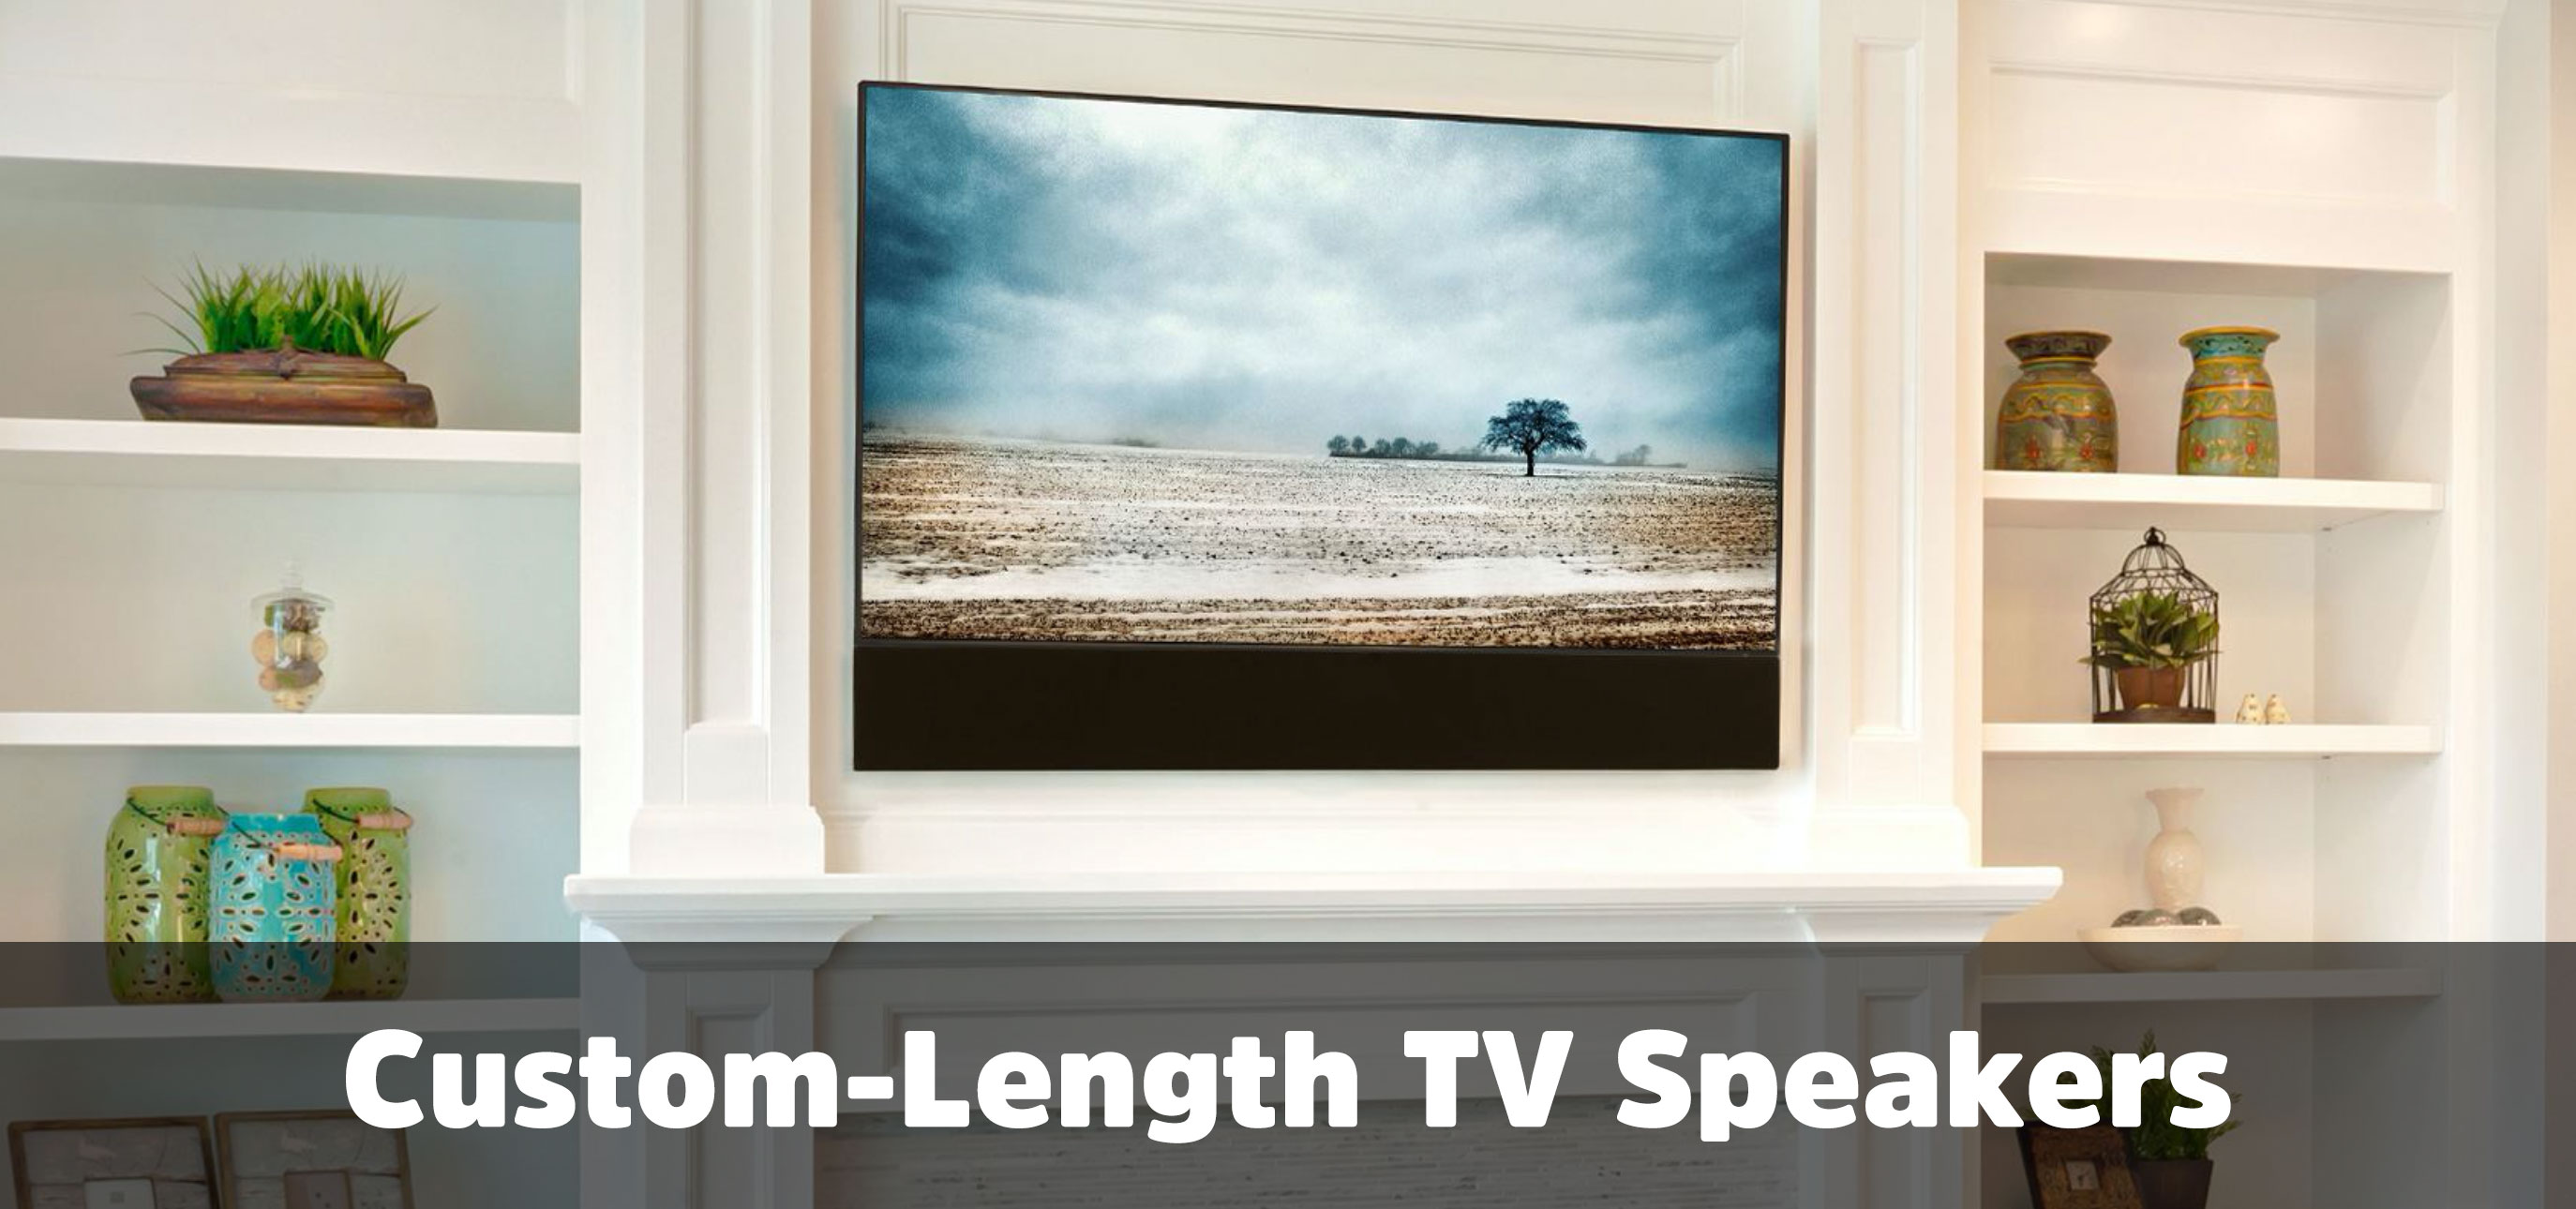 Custom length speakers for any flat panel TV | Decor Custom Collection